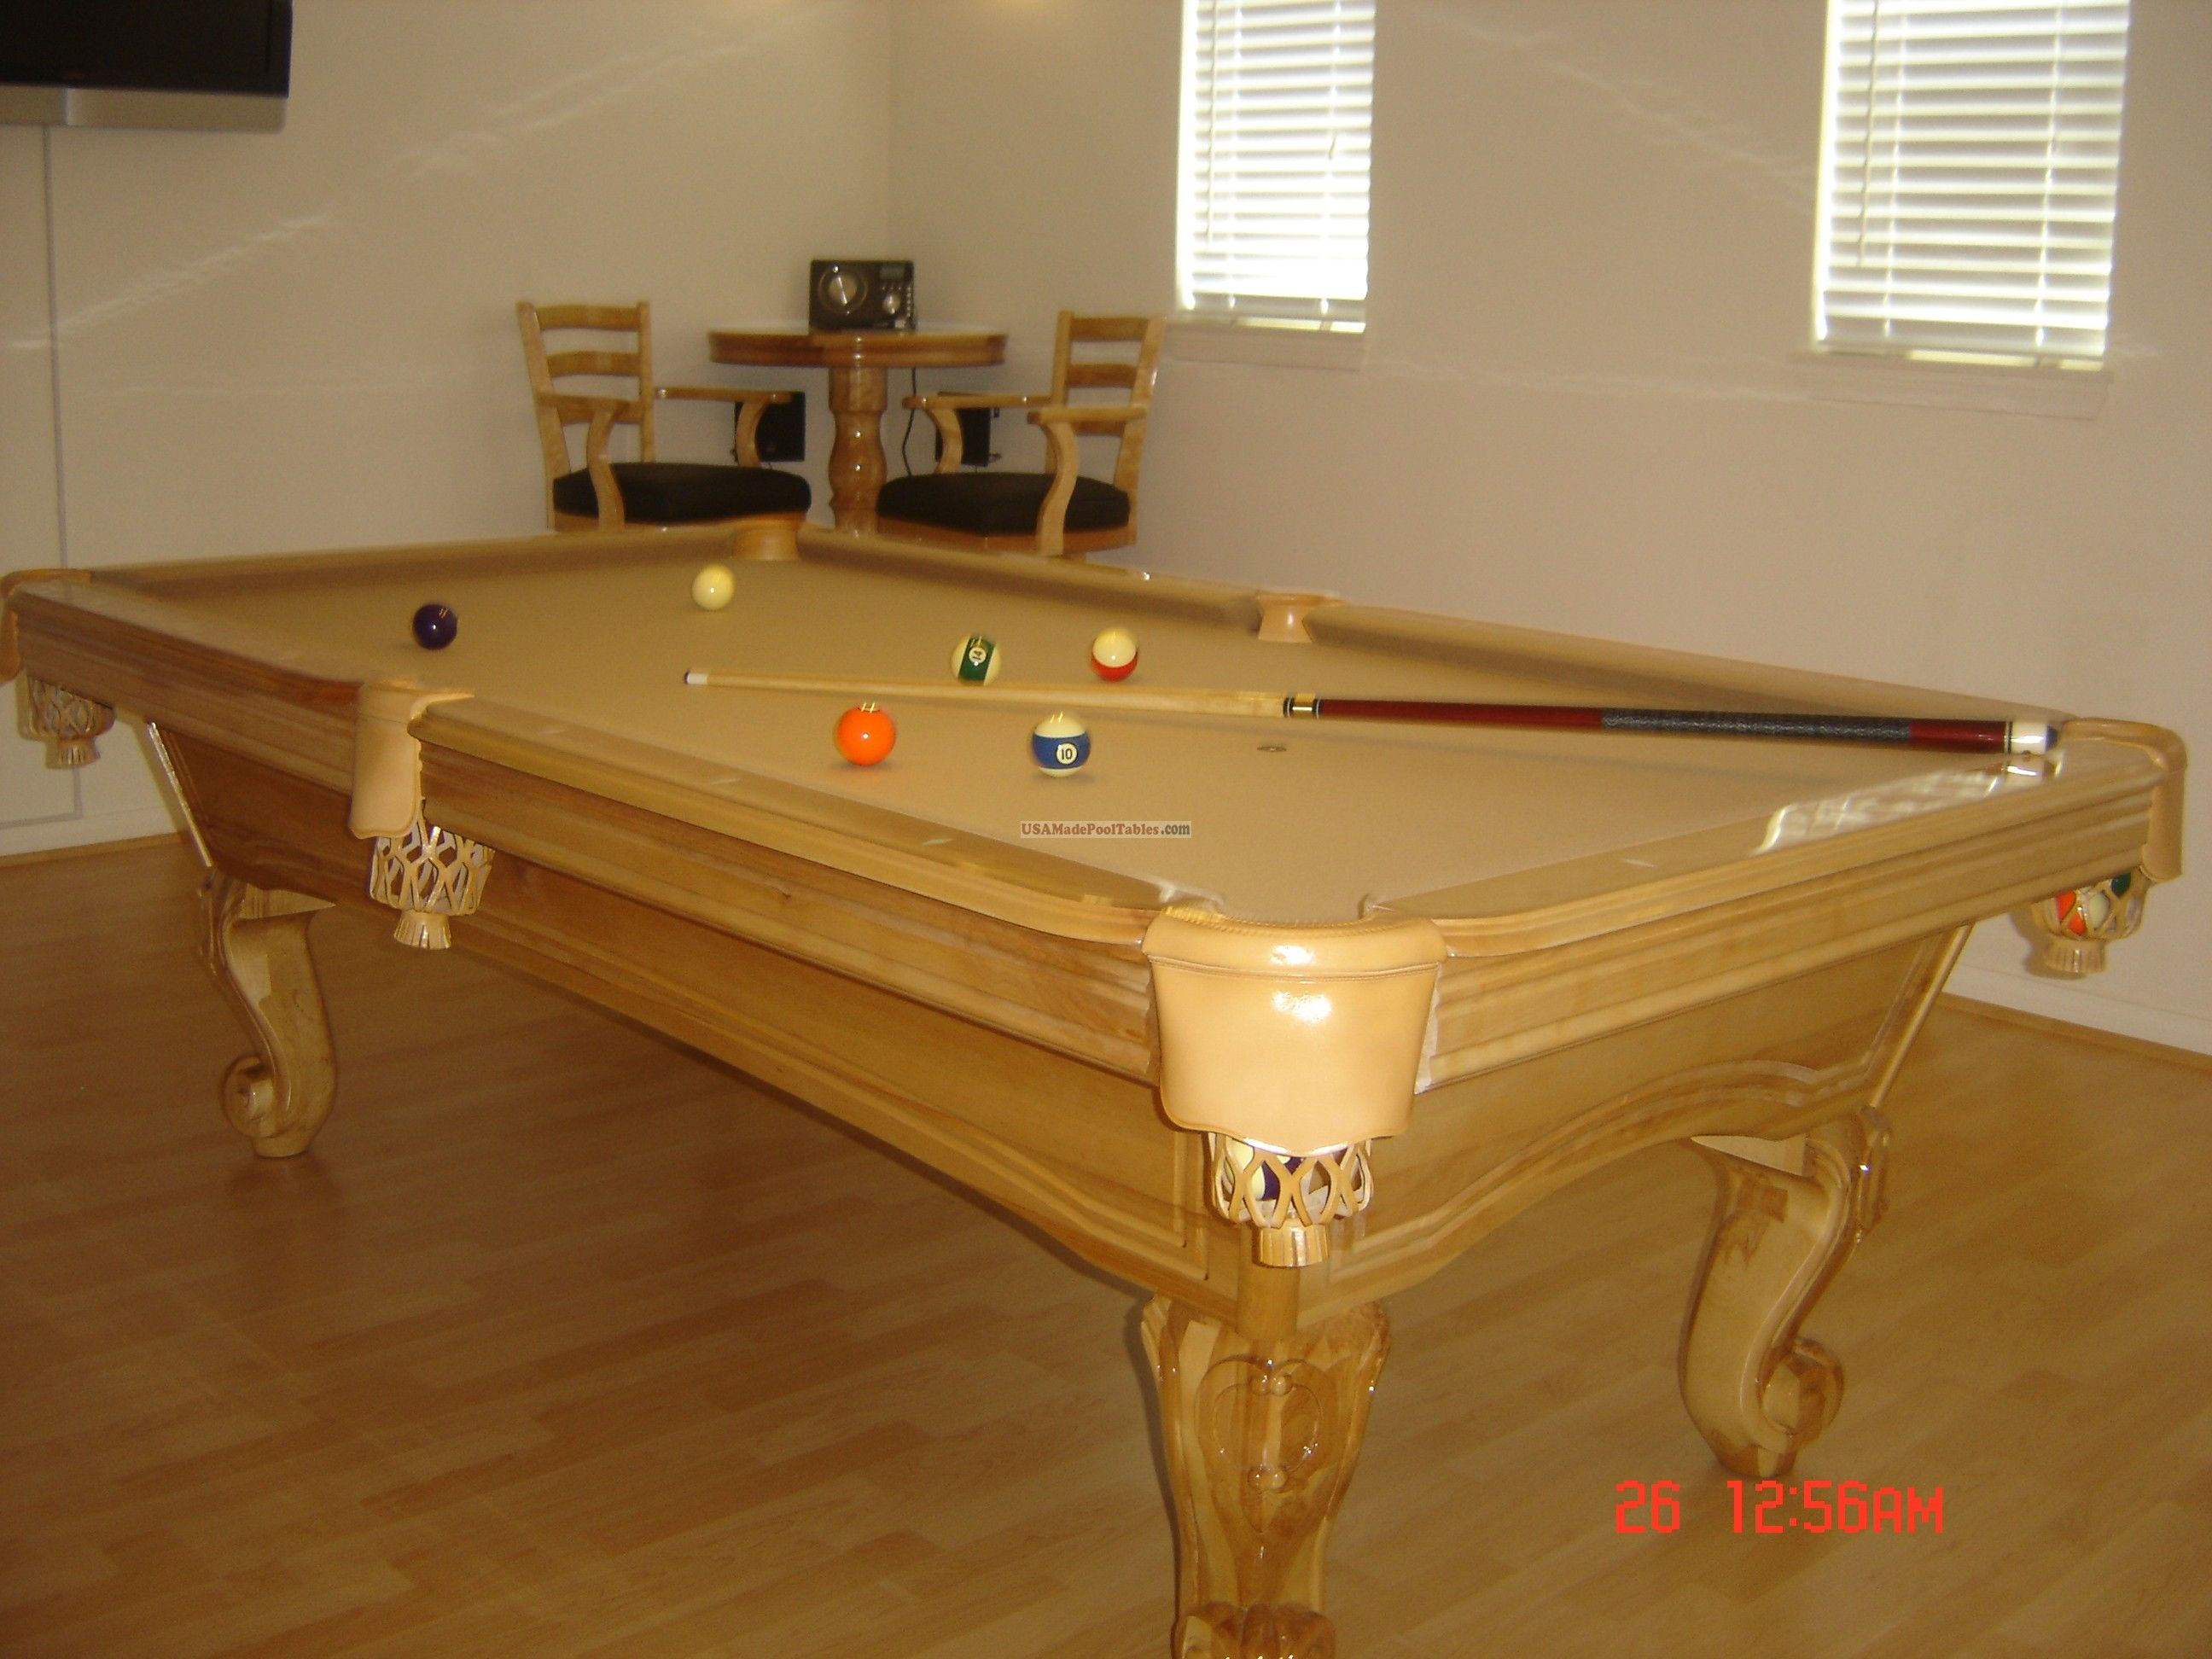 Maple Pool Table POOL TABLES POOL TABLE Garibaldi Pinterest - Pool table repair san diego